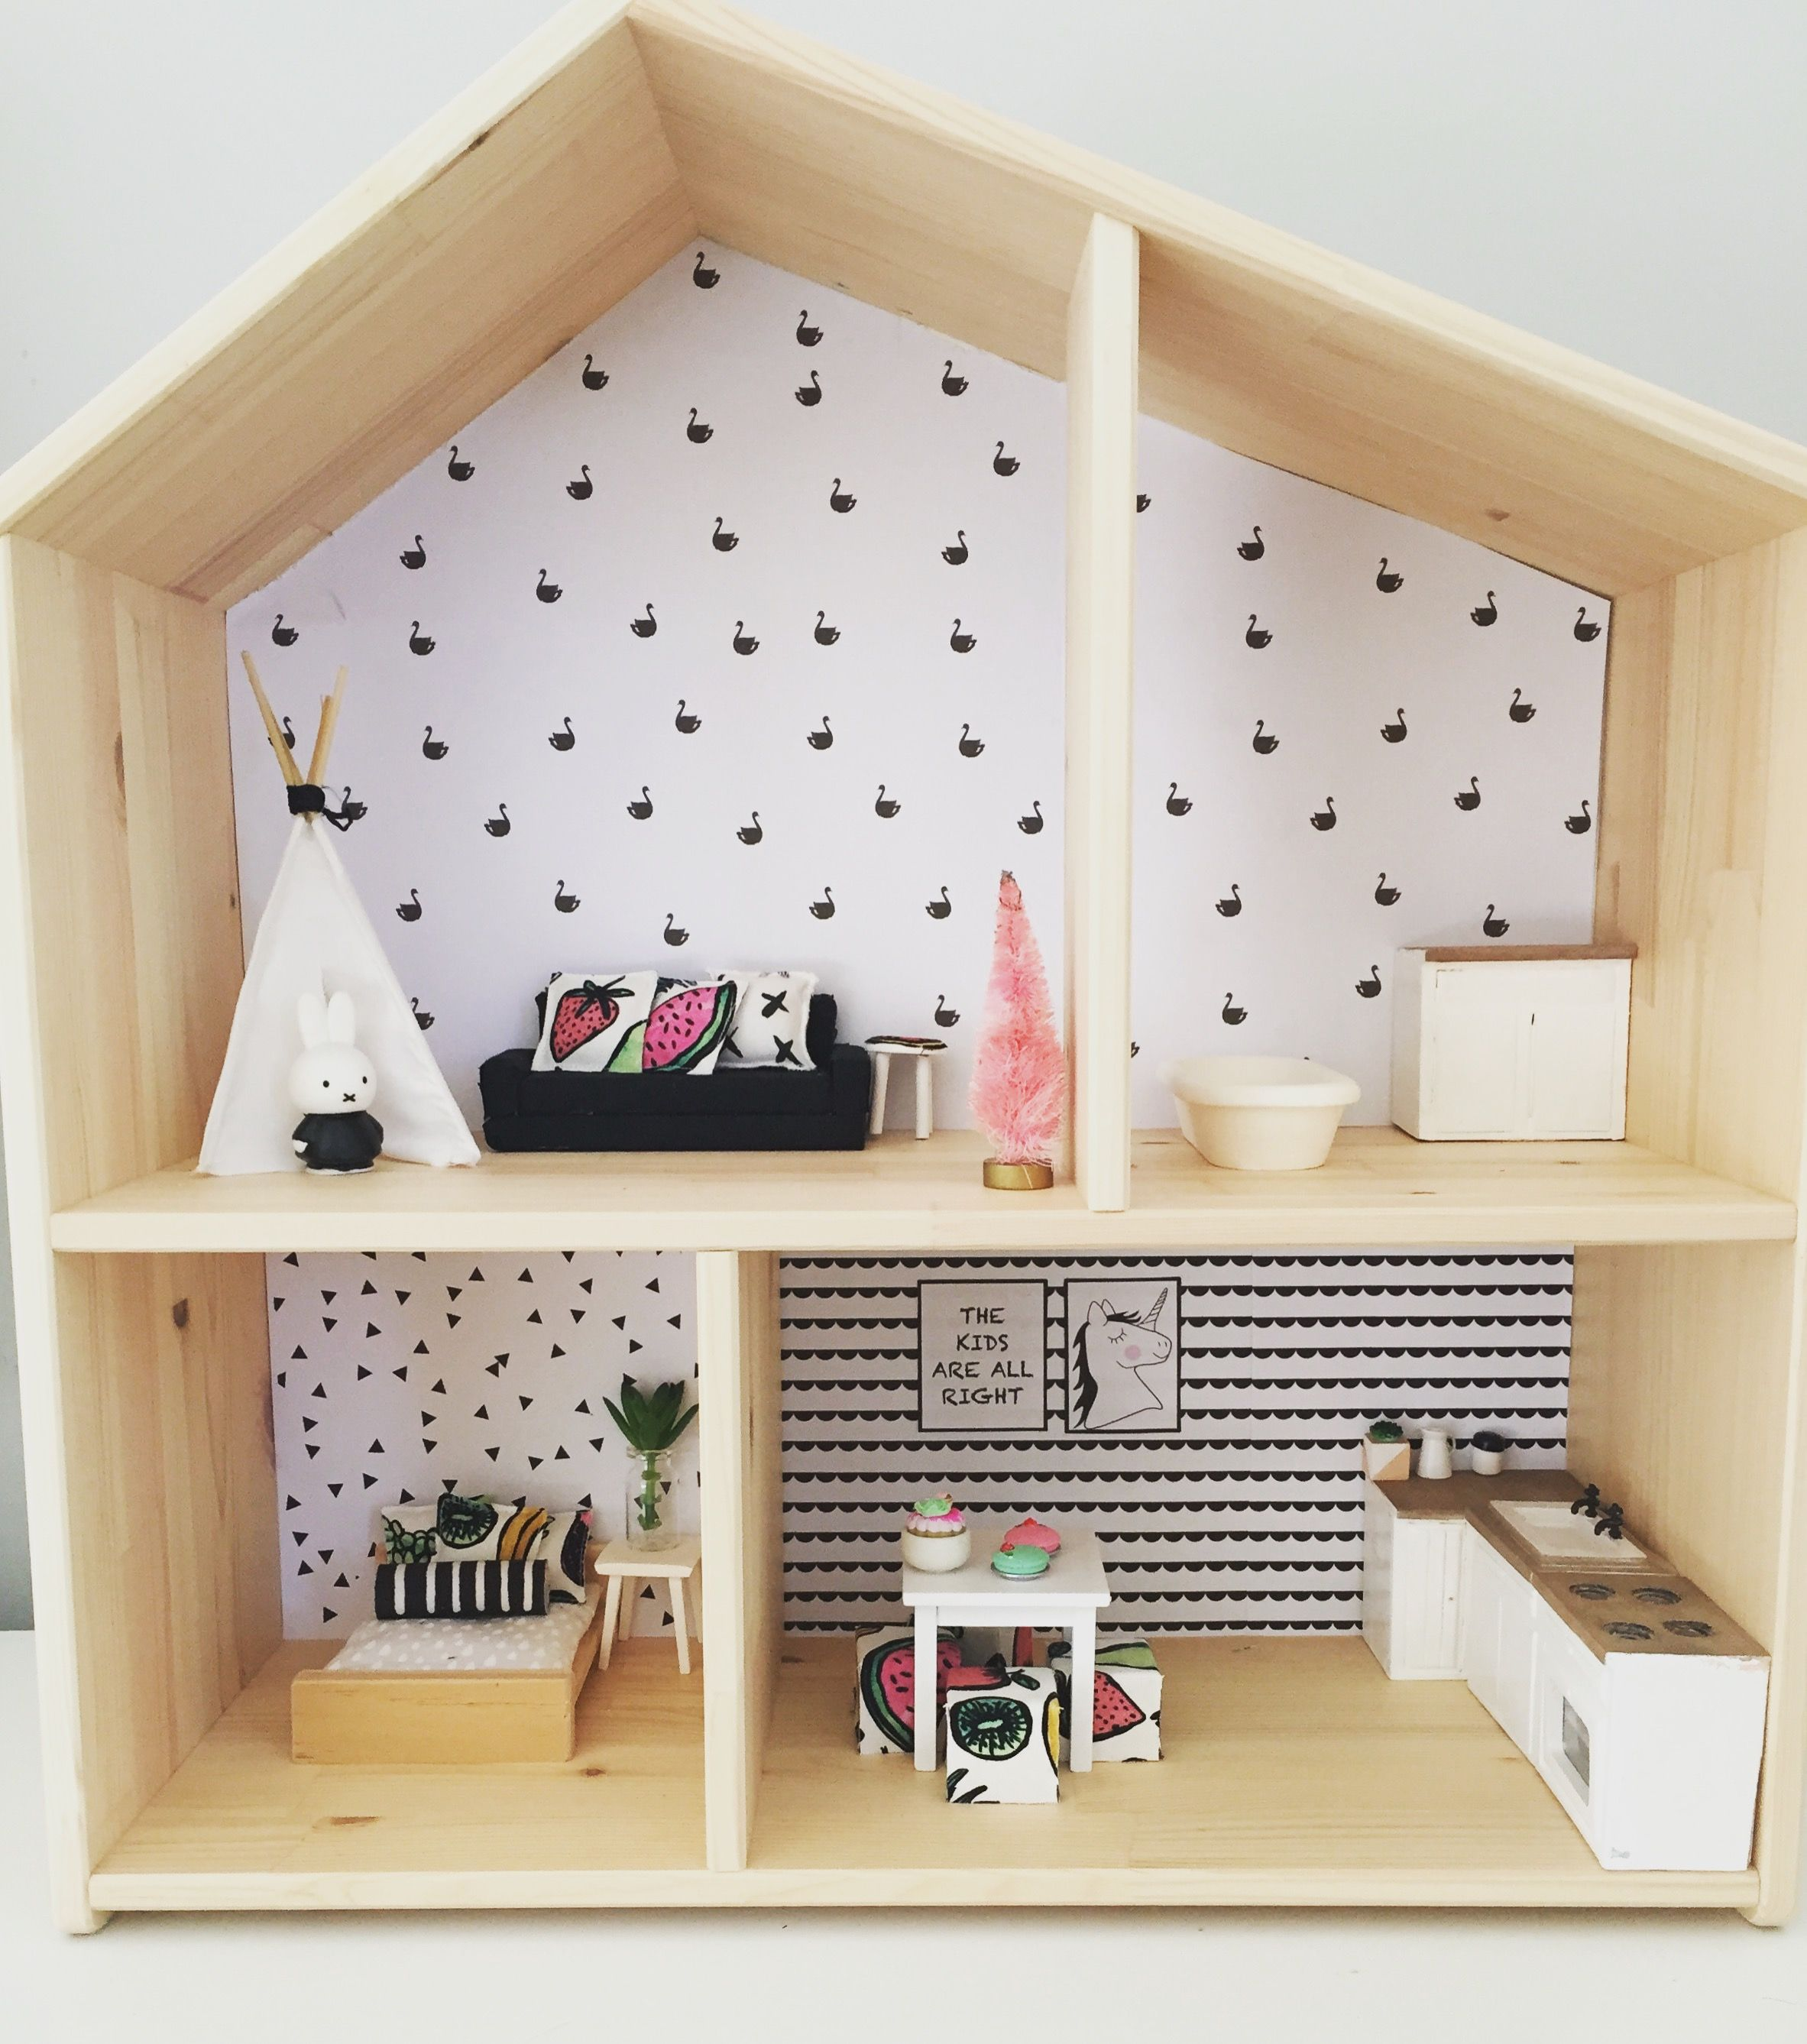 Ikea flisat hack modern dollhouse renovation 1 12 scale monochrome decor girls dollhouse for Ikea casa bambole